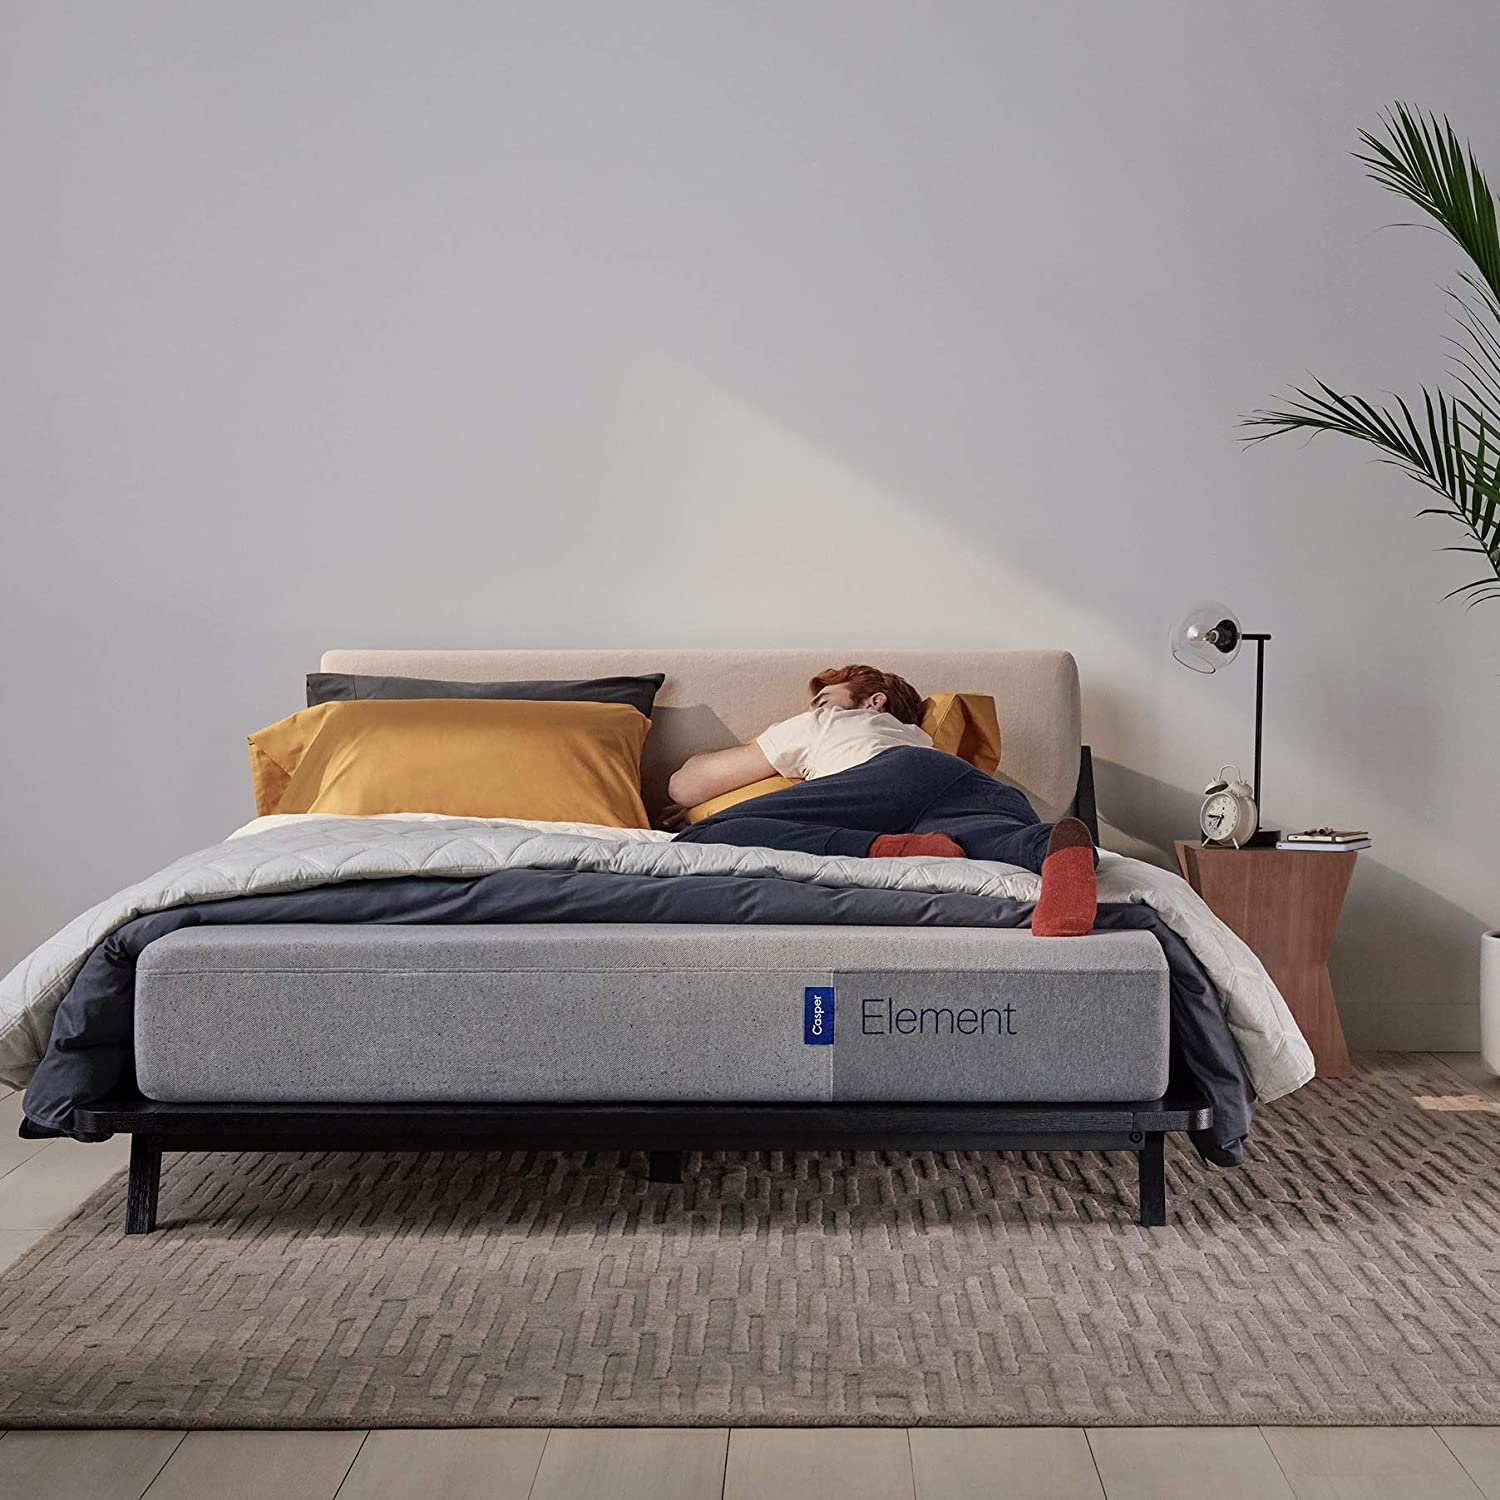 Casper Sleep Element Mattress